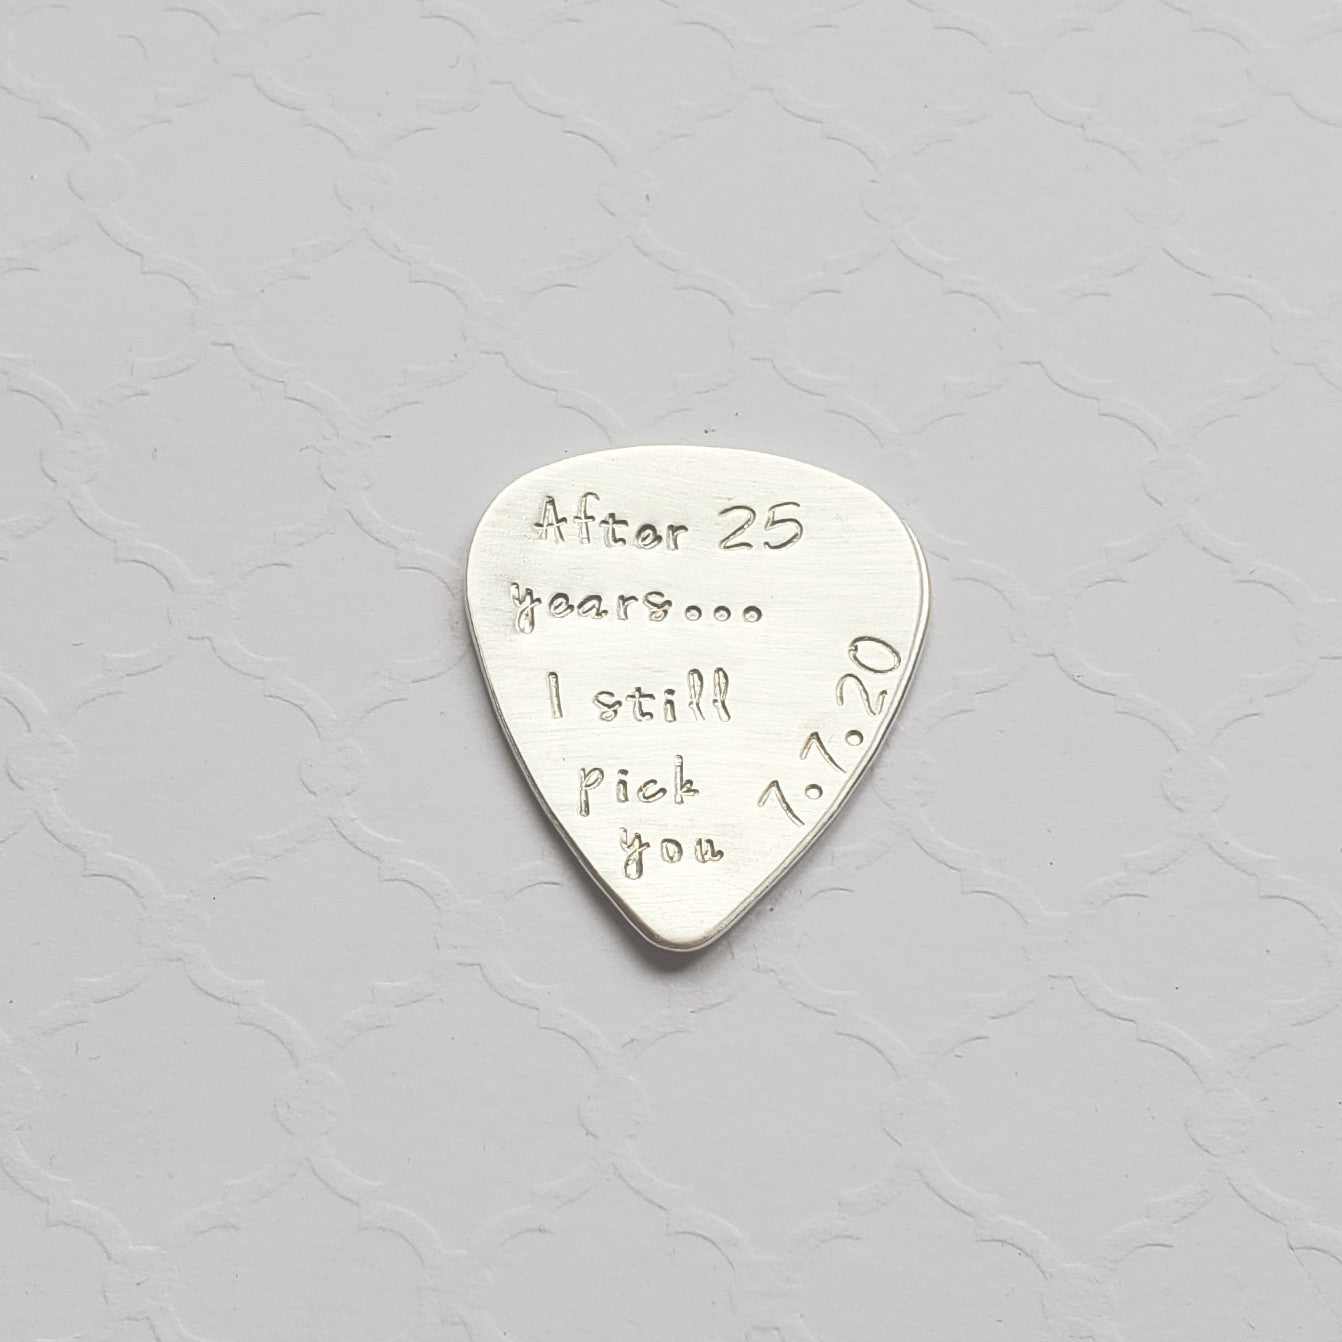 25th anniversary sterling silver guitar pick